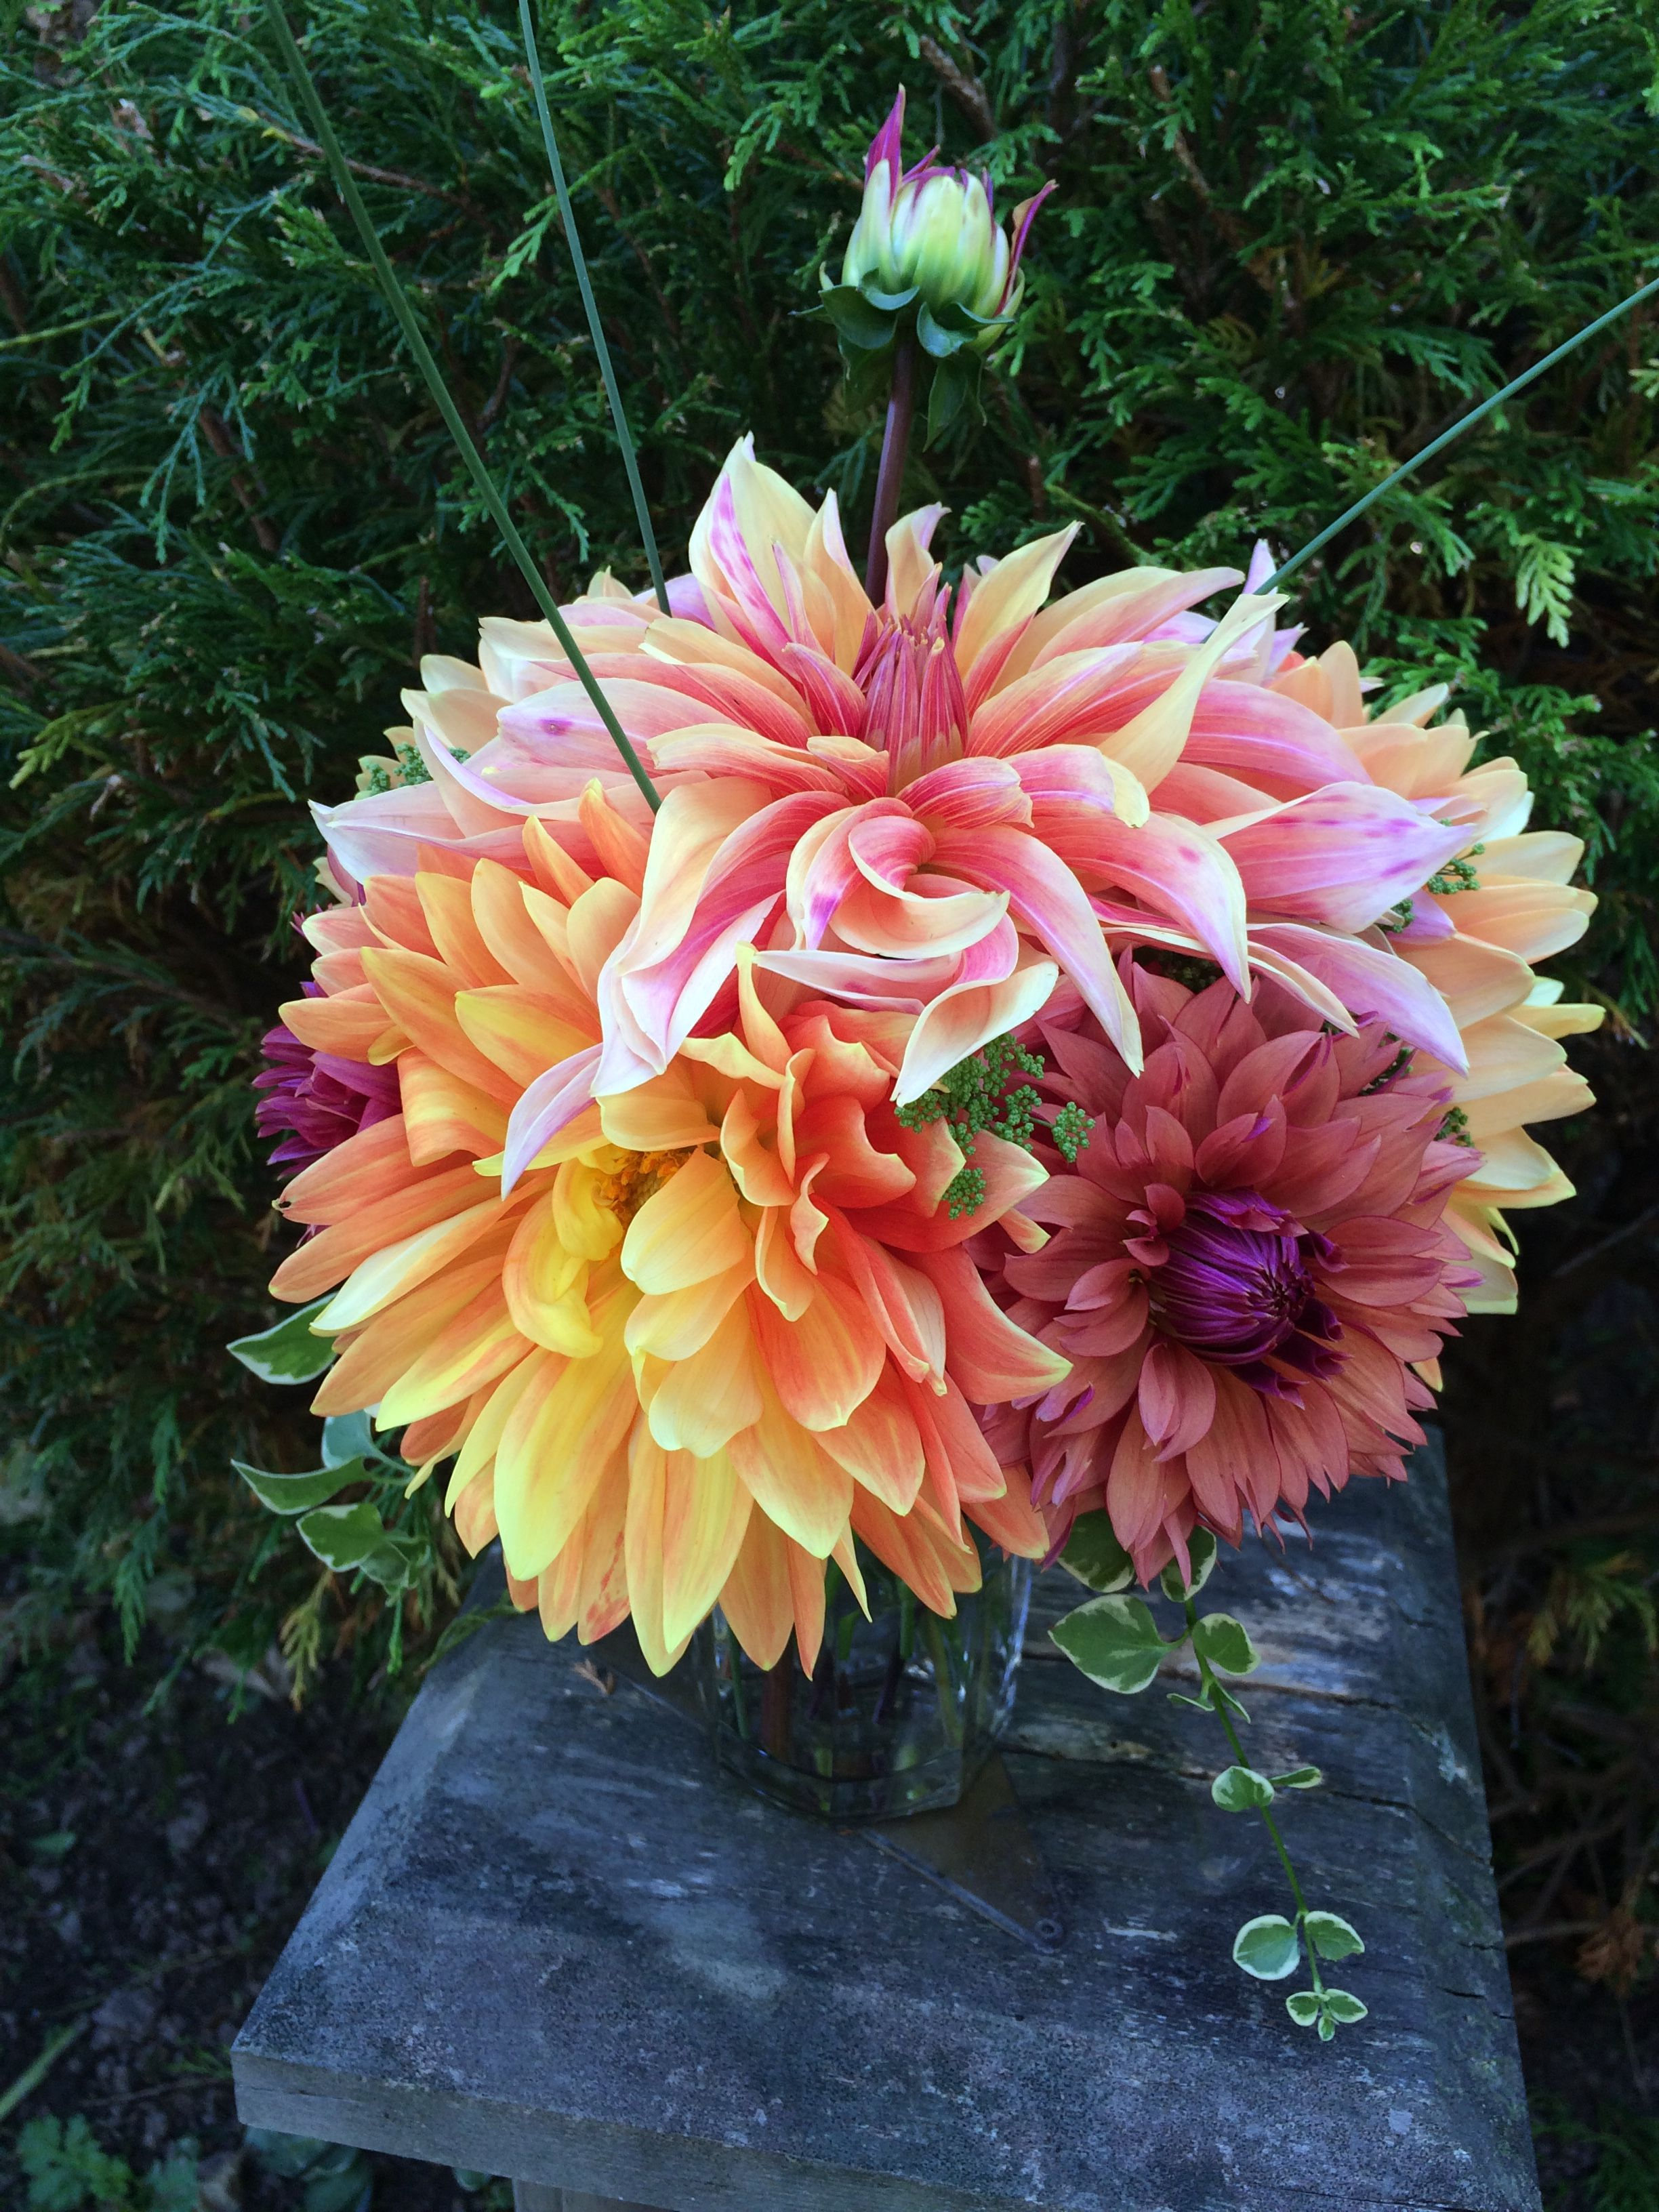 Pin by Kim Satteson on 2017 Kim's own Dahlias 2017 (With